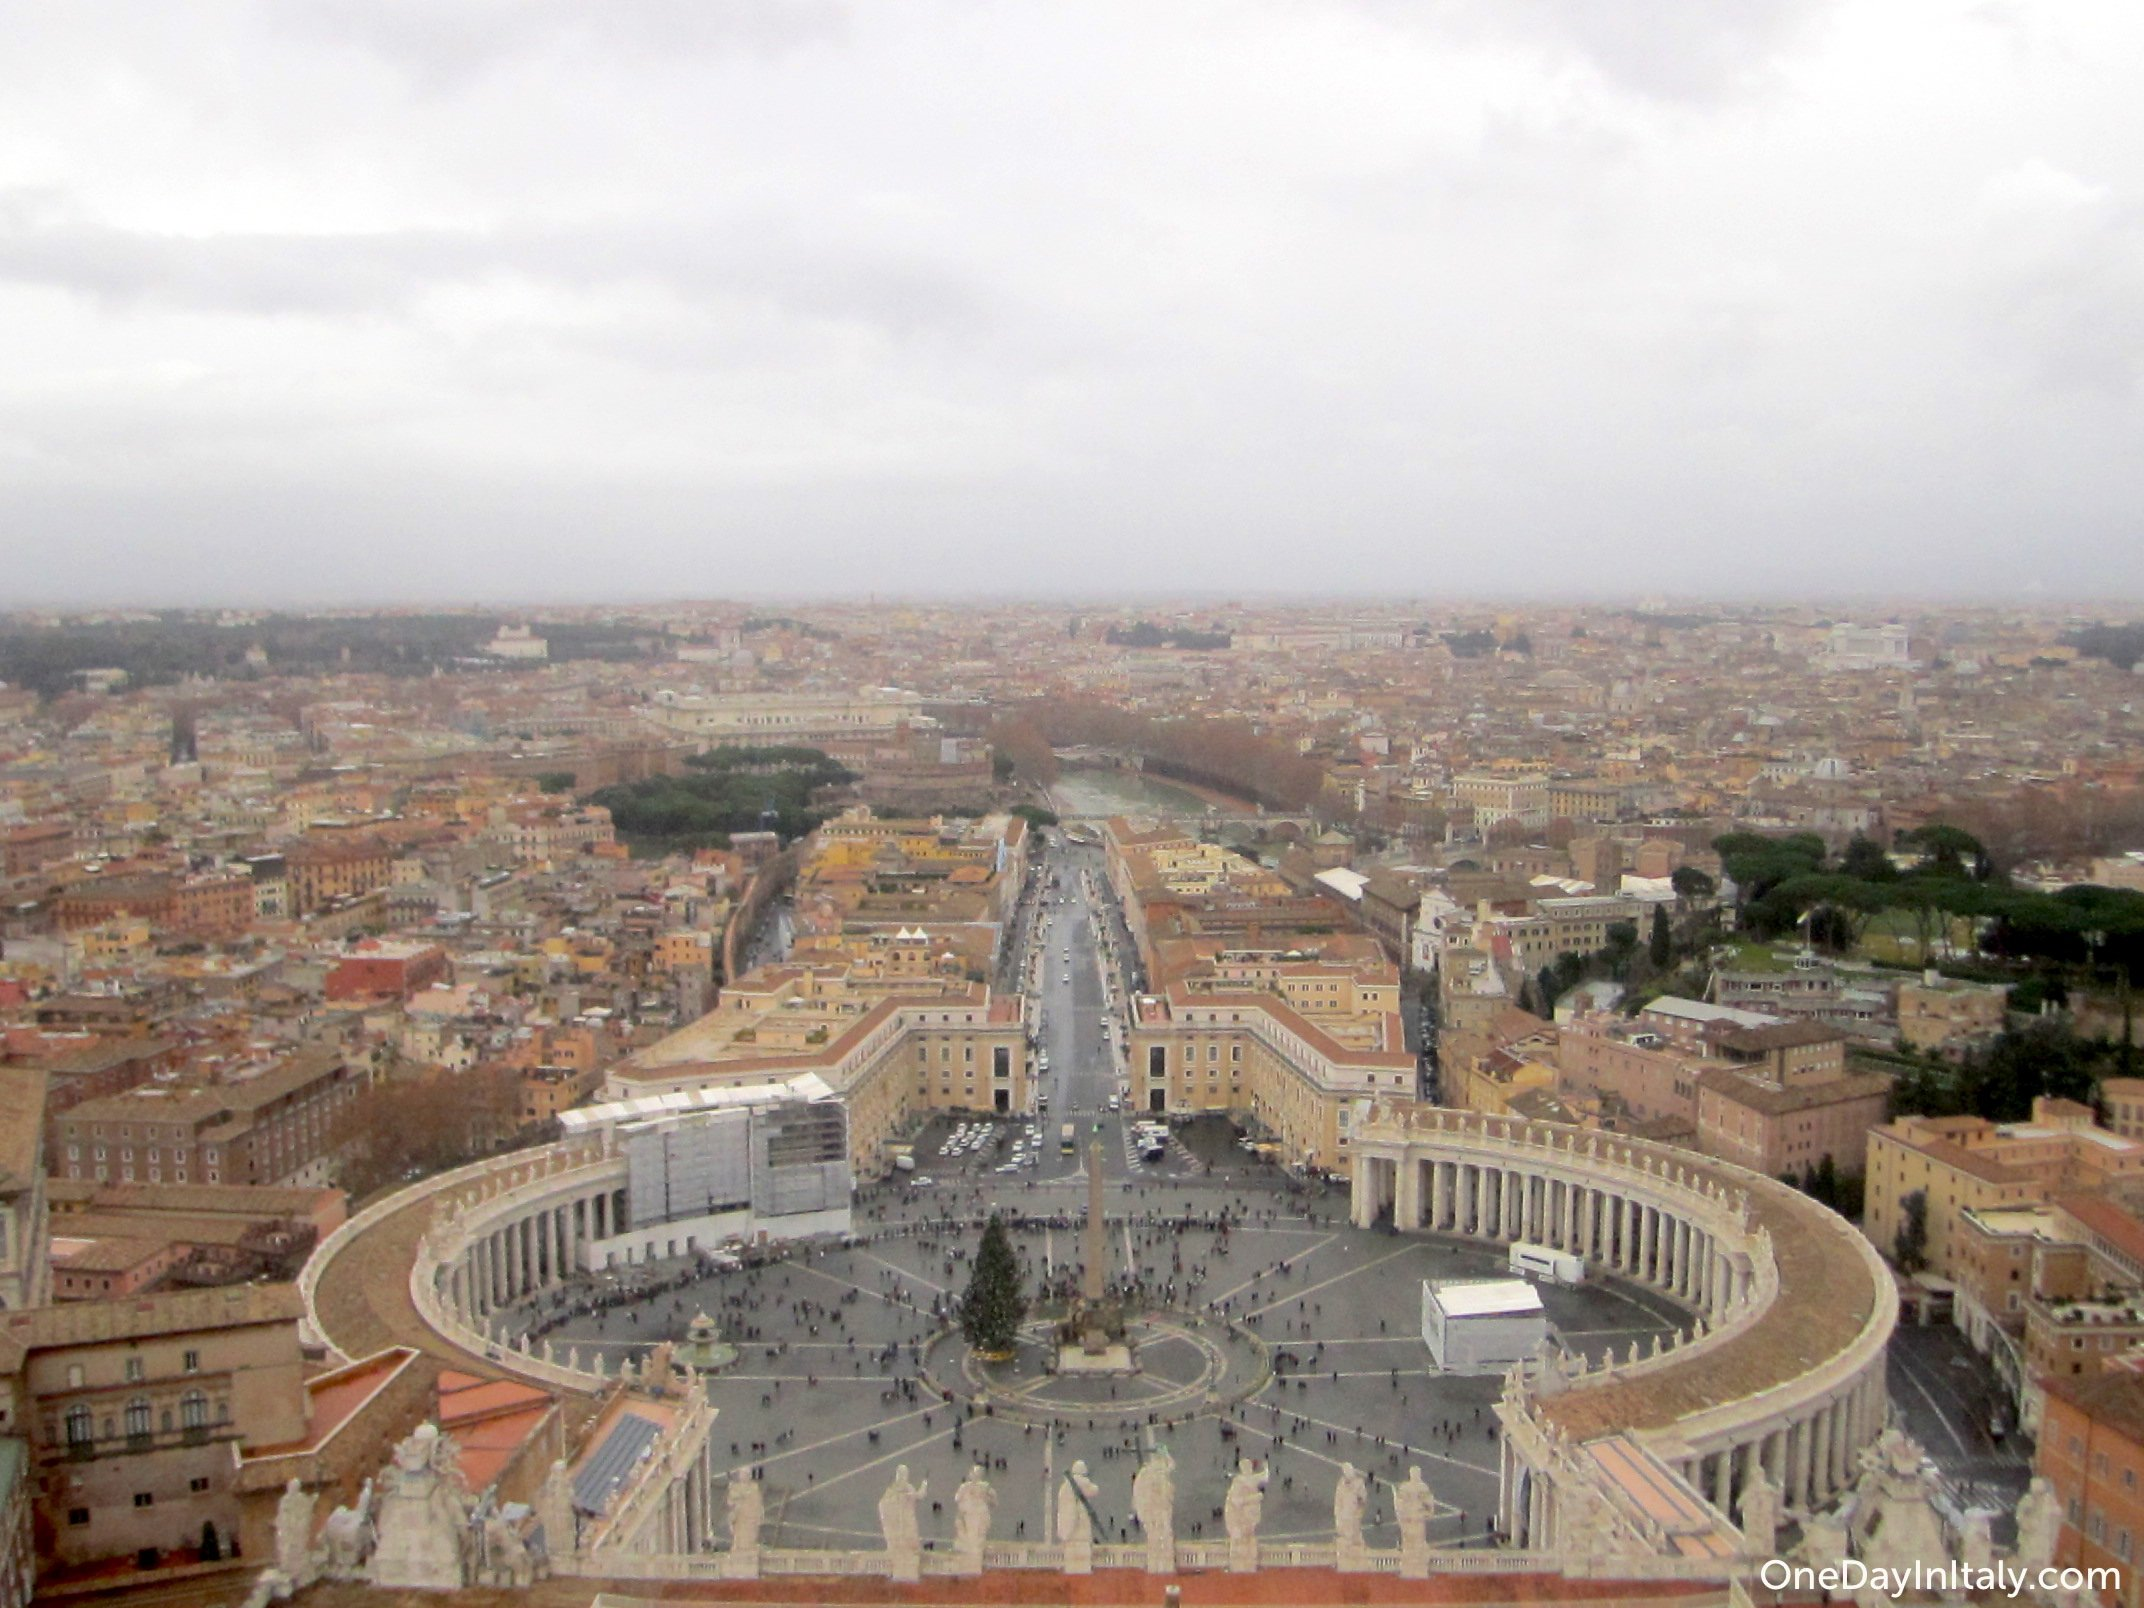 St. Peter's Square from the Cupola